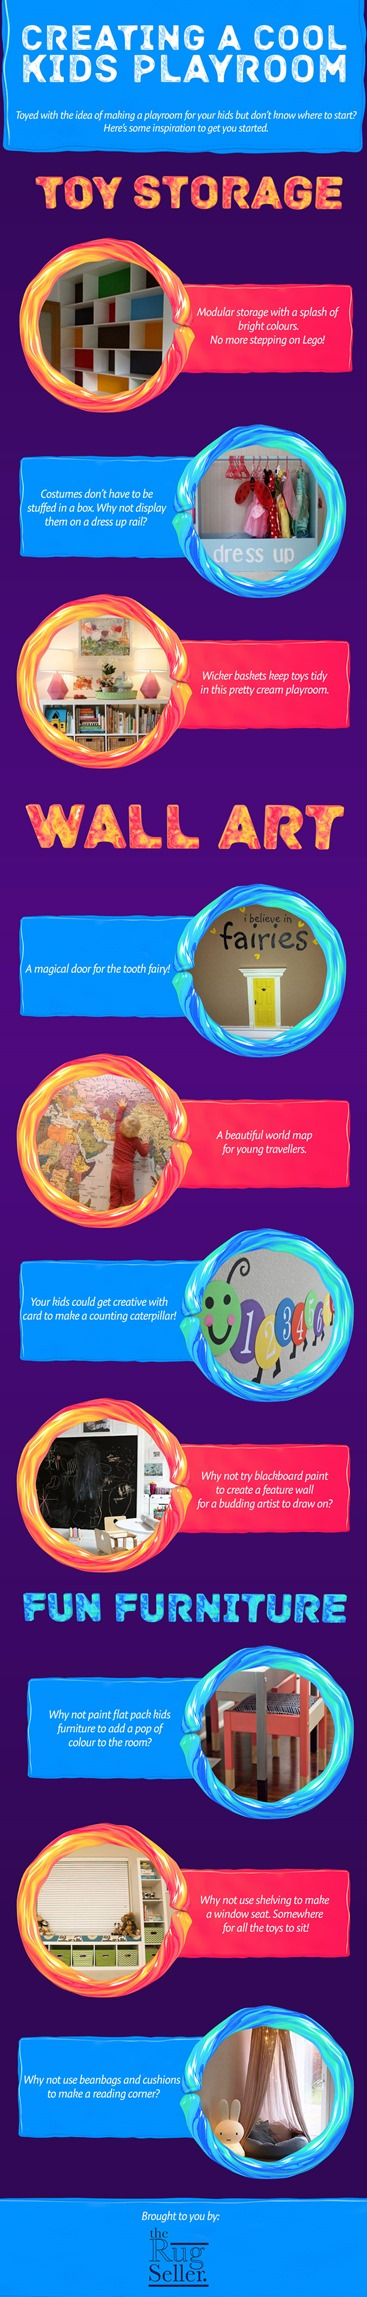 playroominfographic